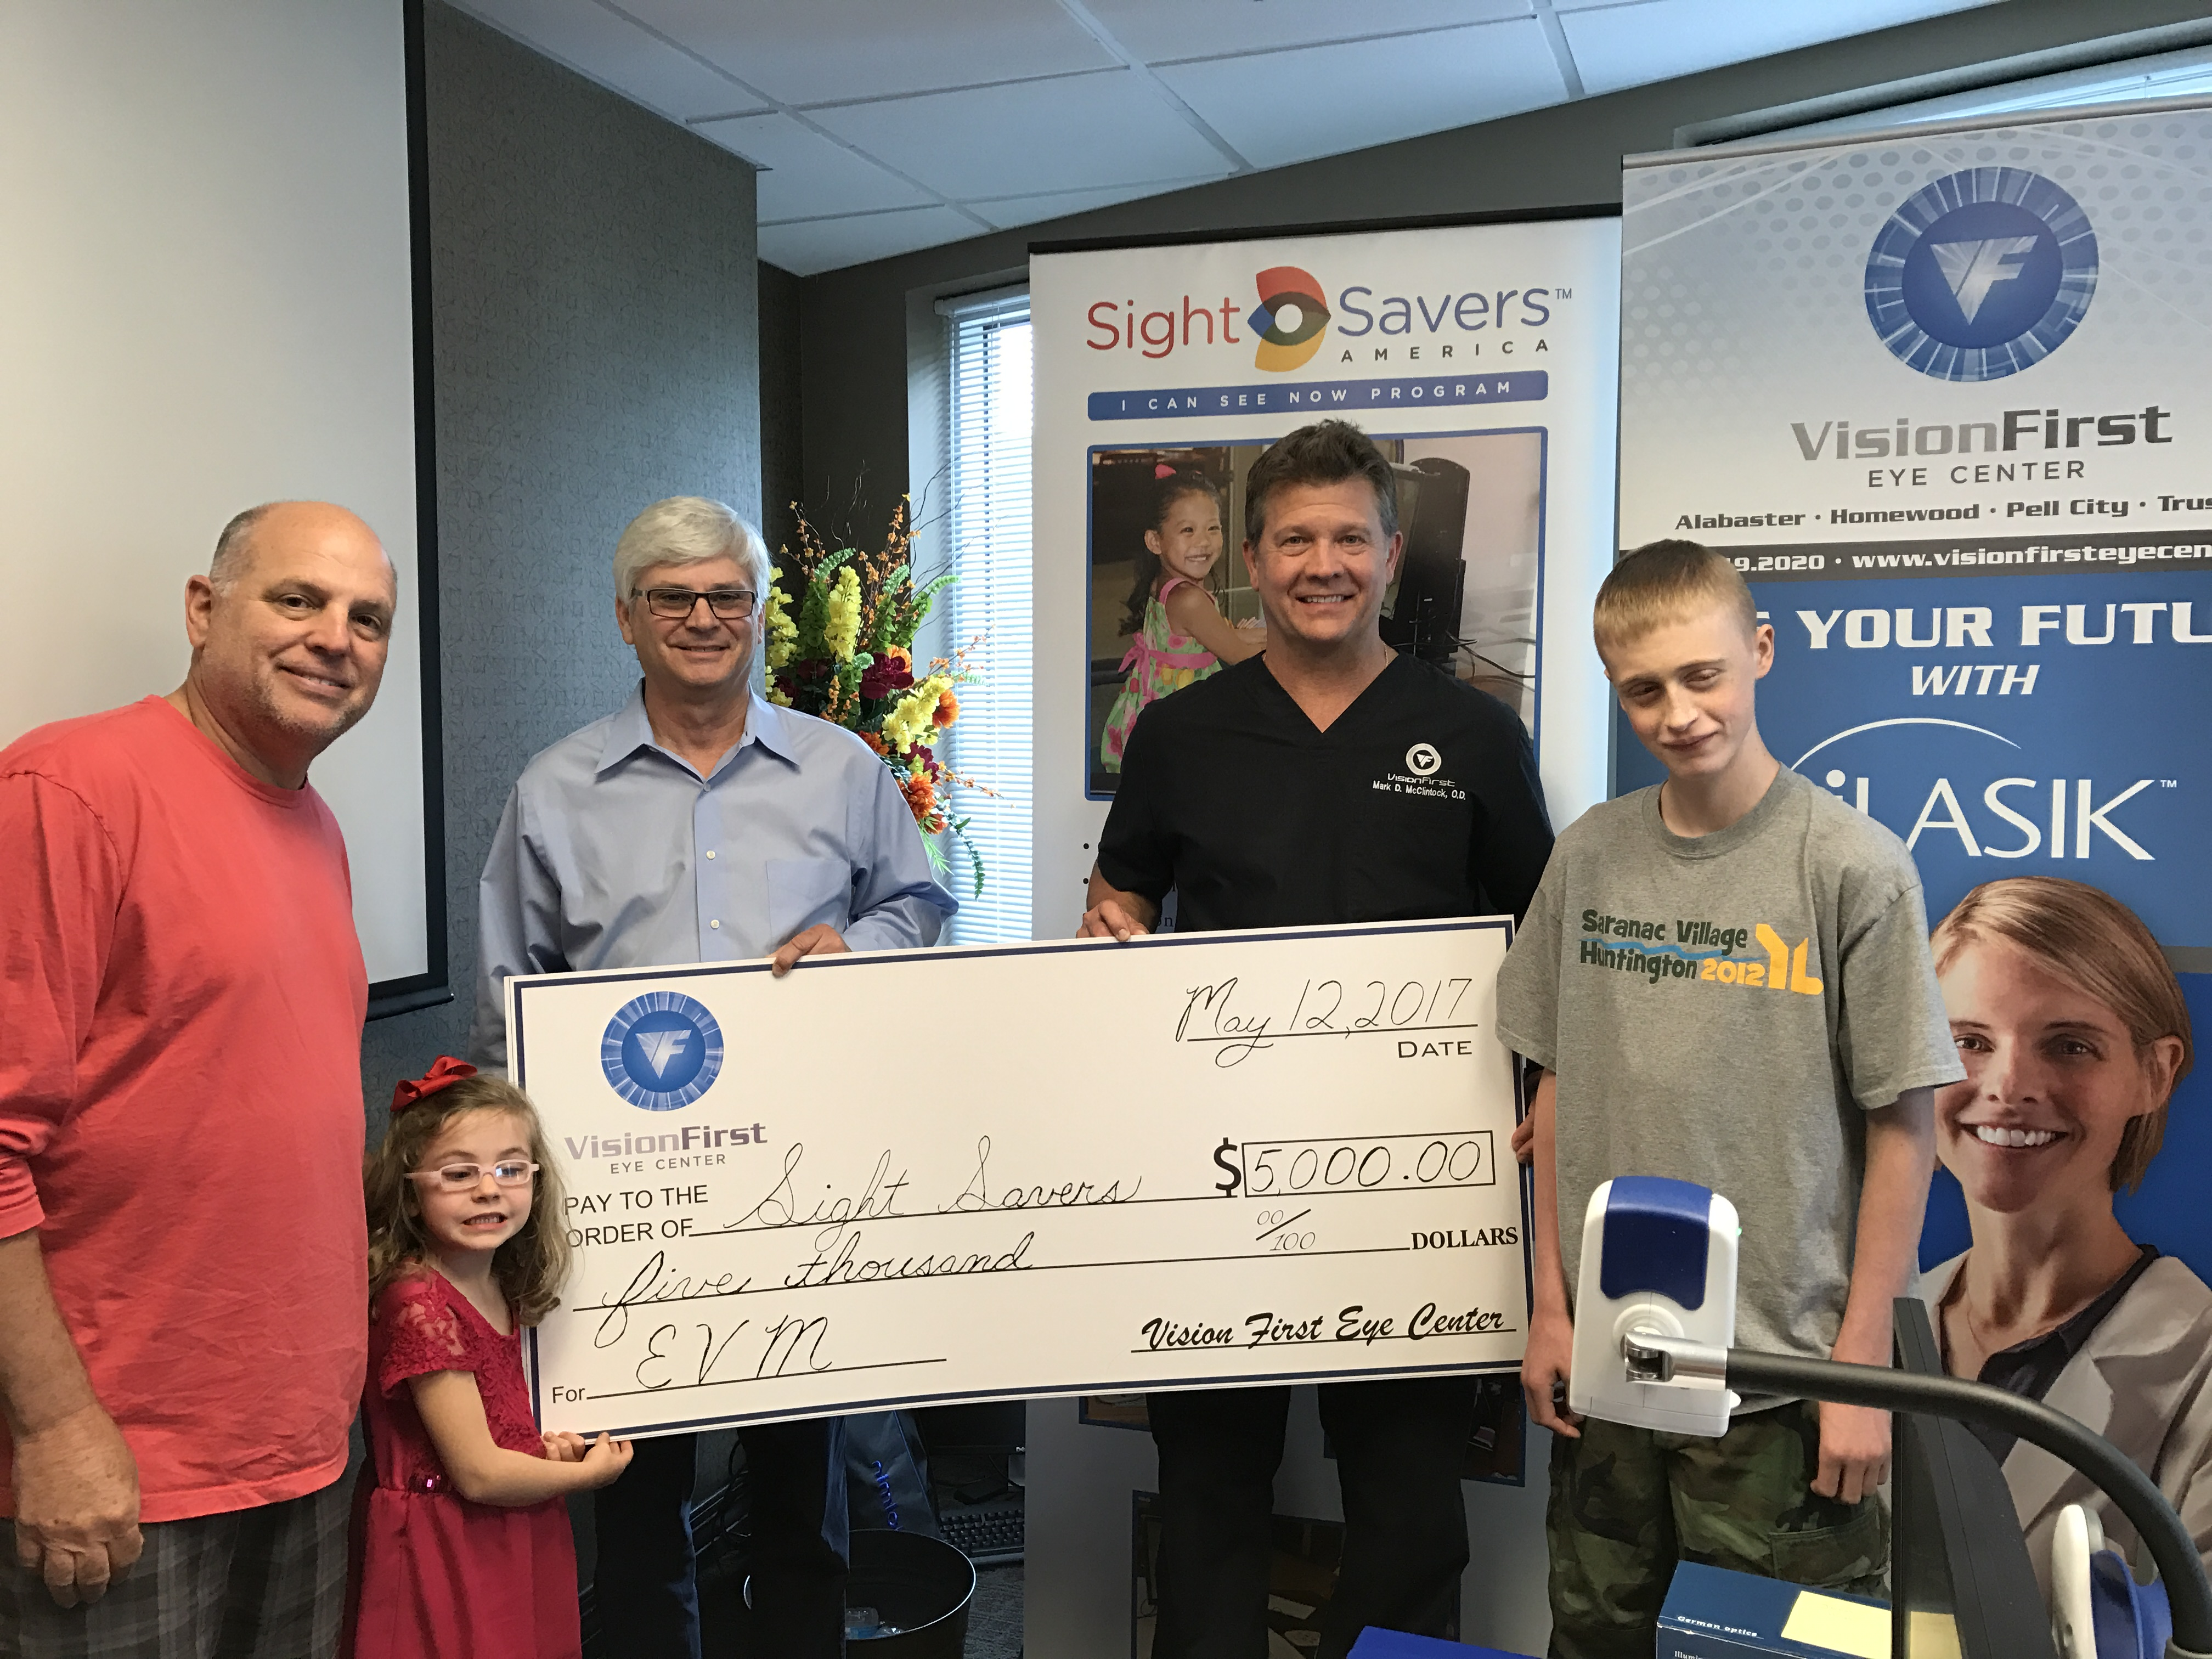 VisionFirst donates $5,000 to Sight Savers America for children's eye care